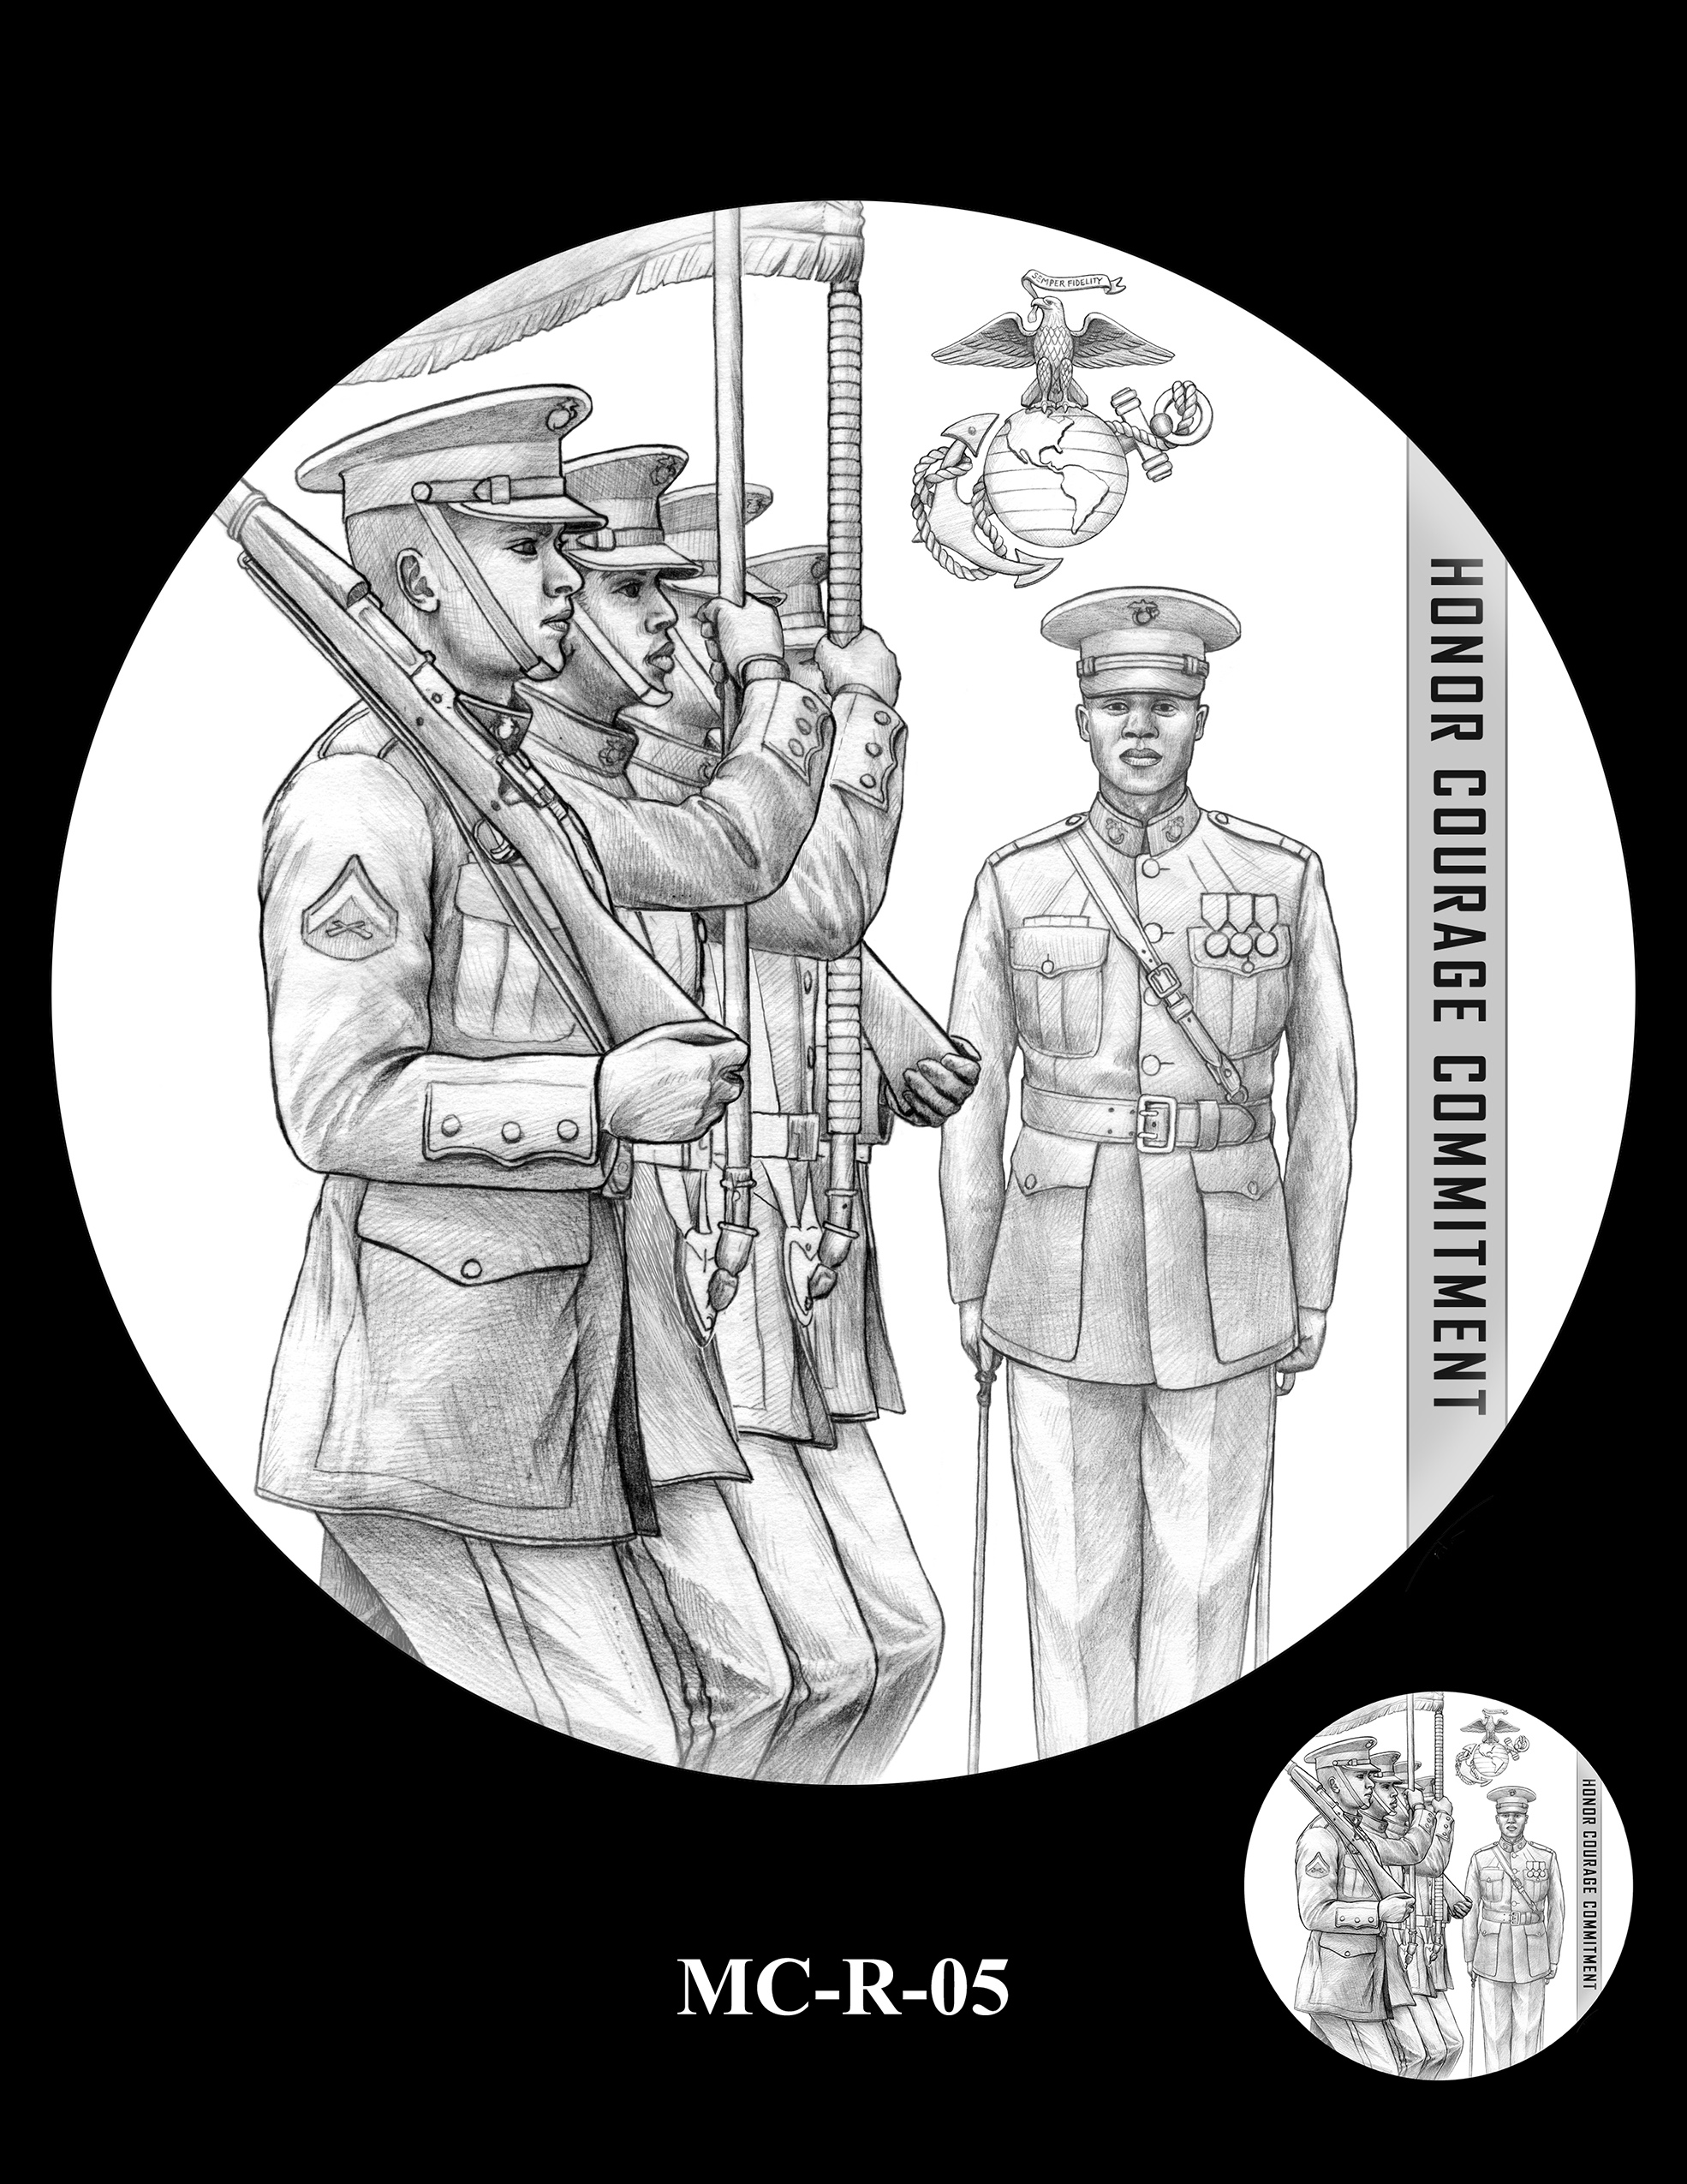 MC-R-05 -- United States Marine Corps Silver Medal